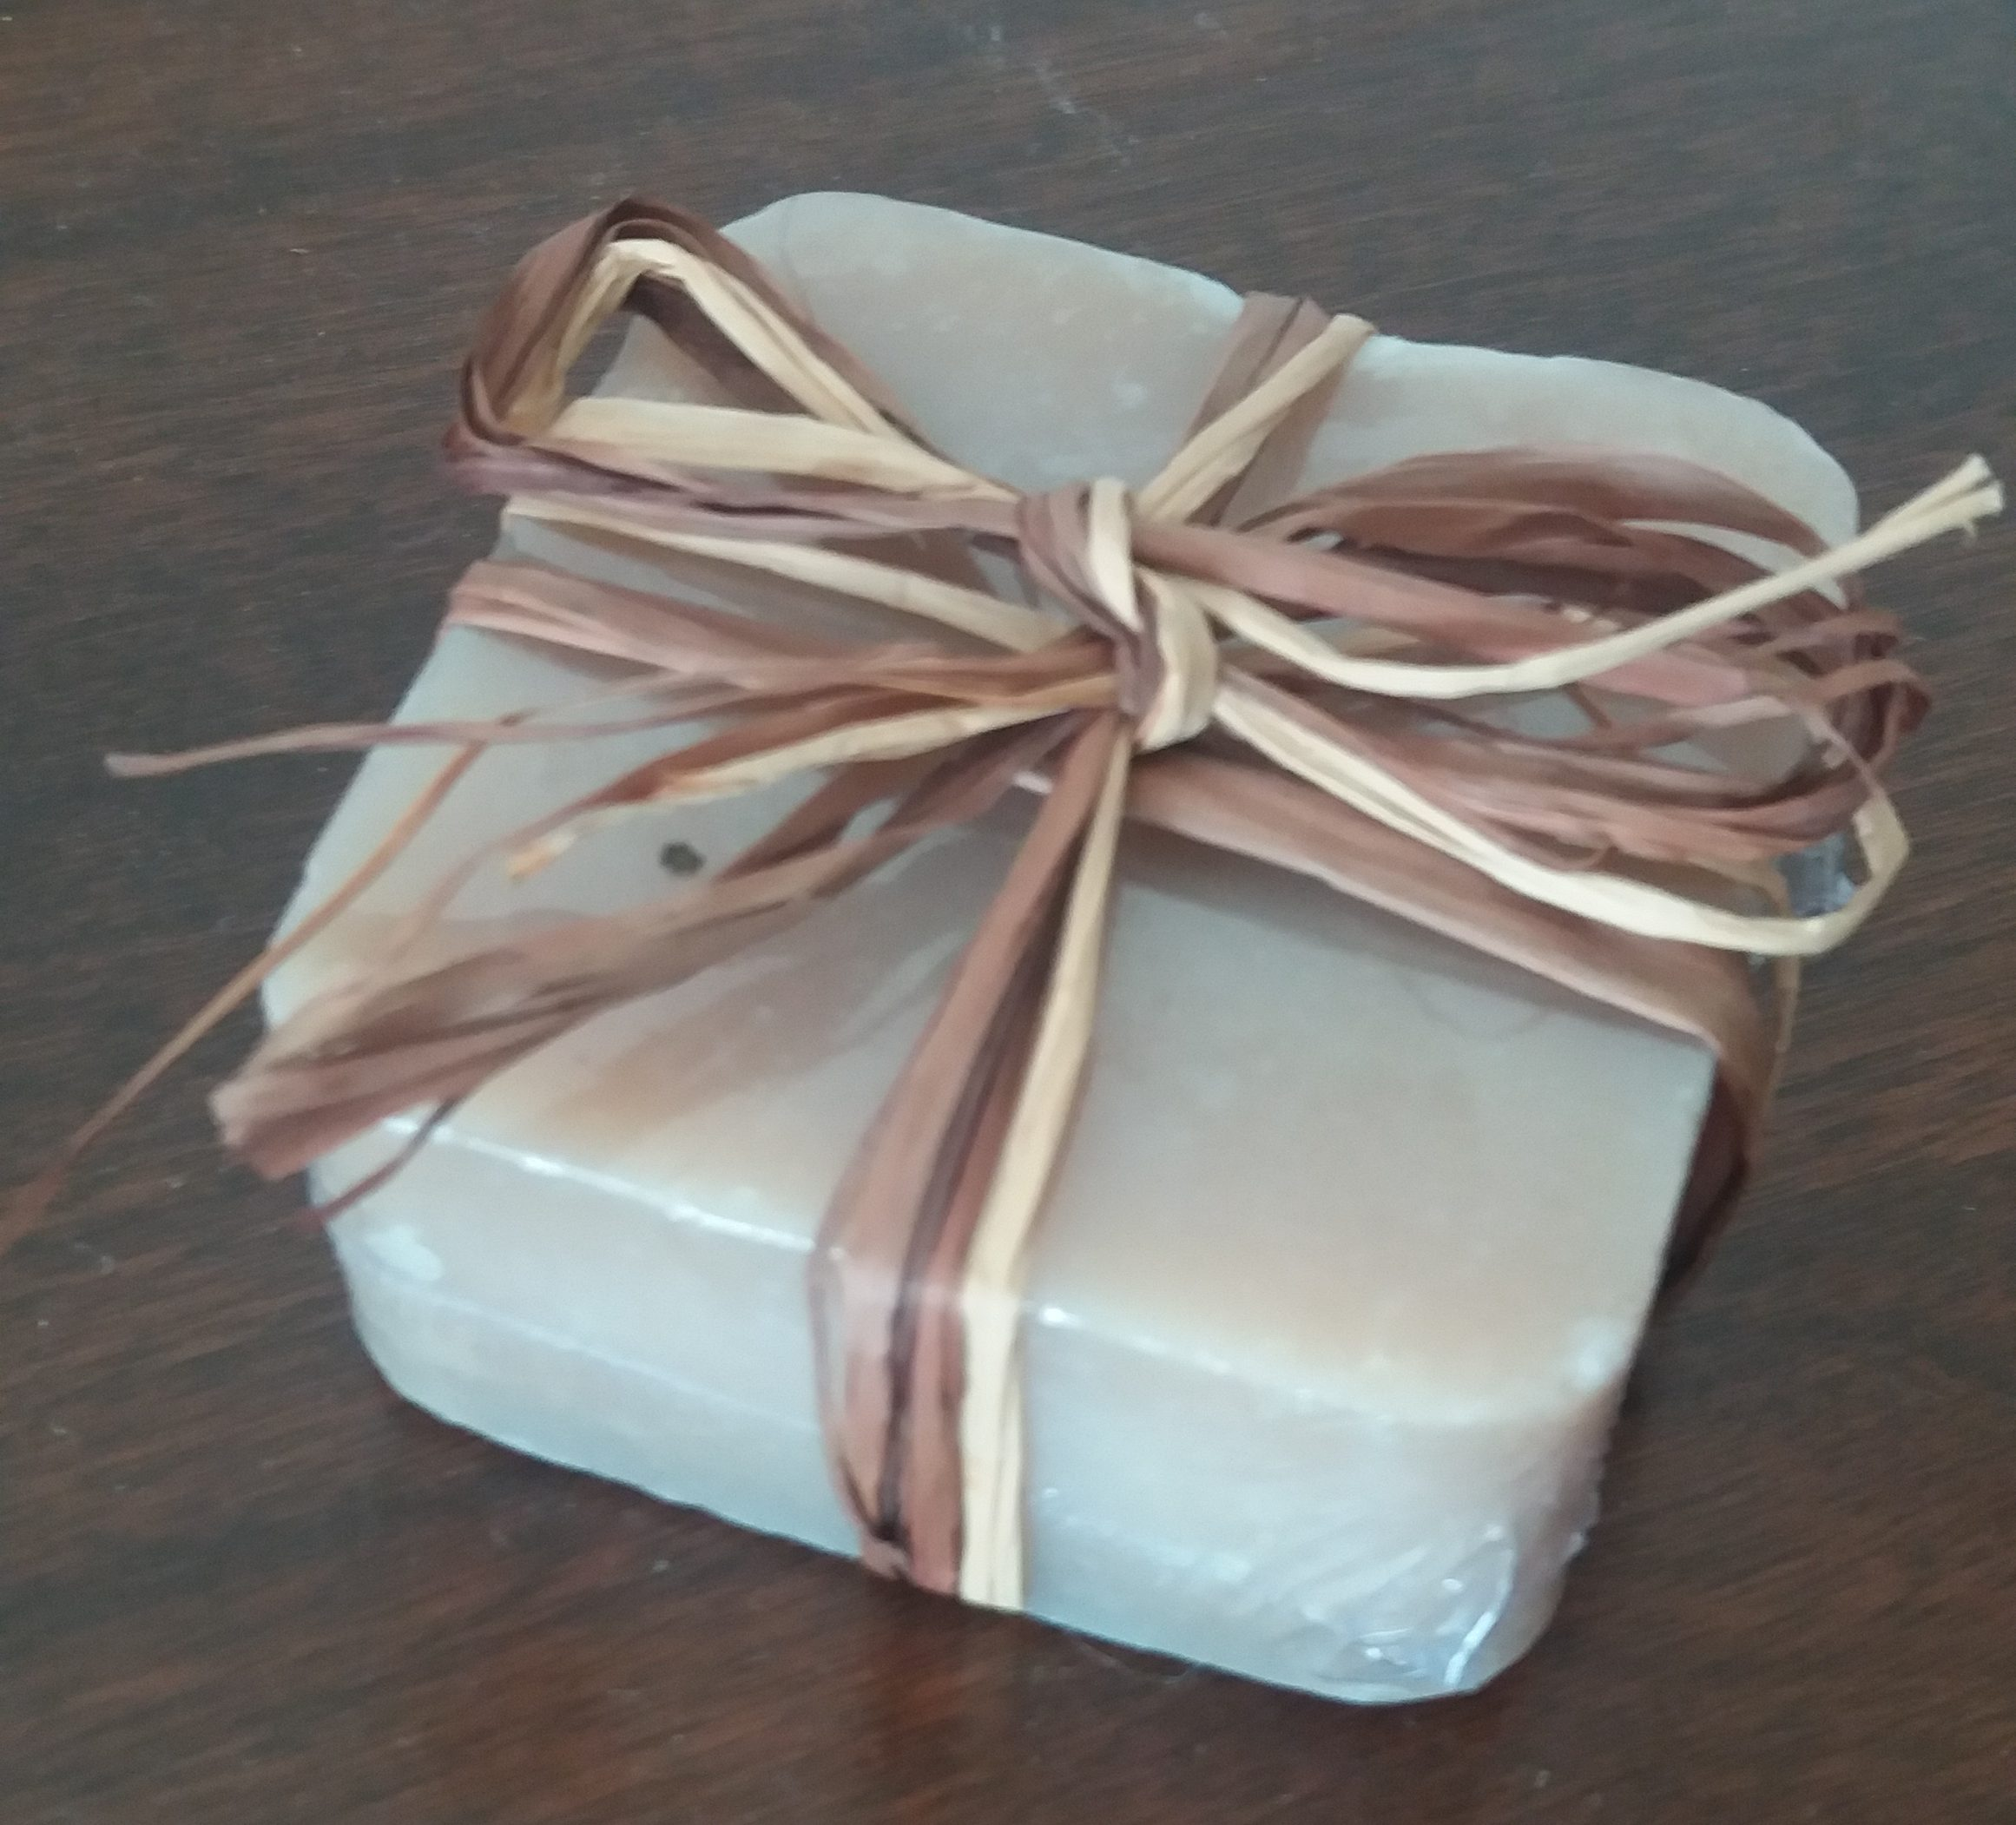 Vegan Maple Soap wrapped in plastic and with a straw bow string